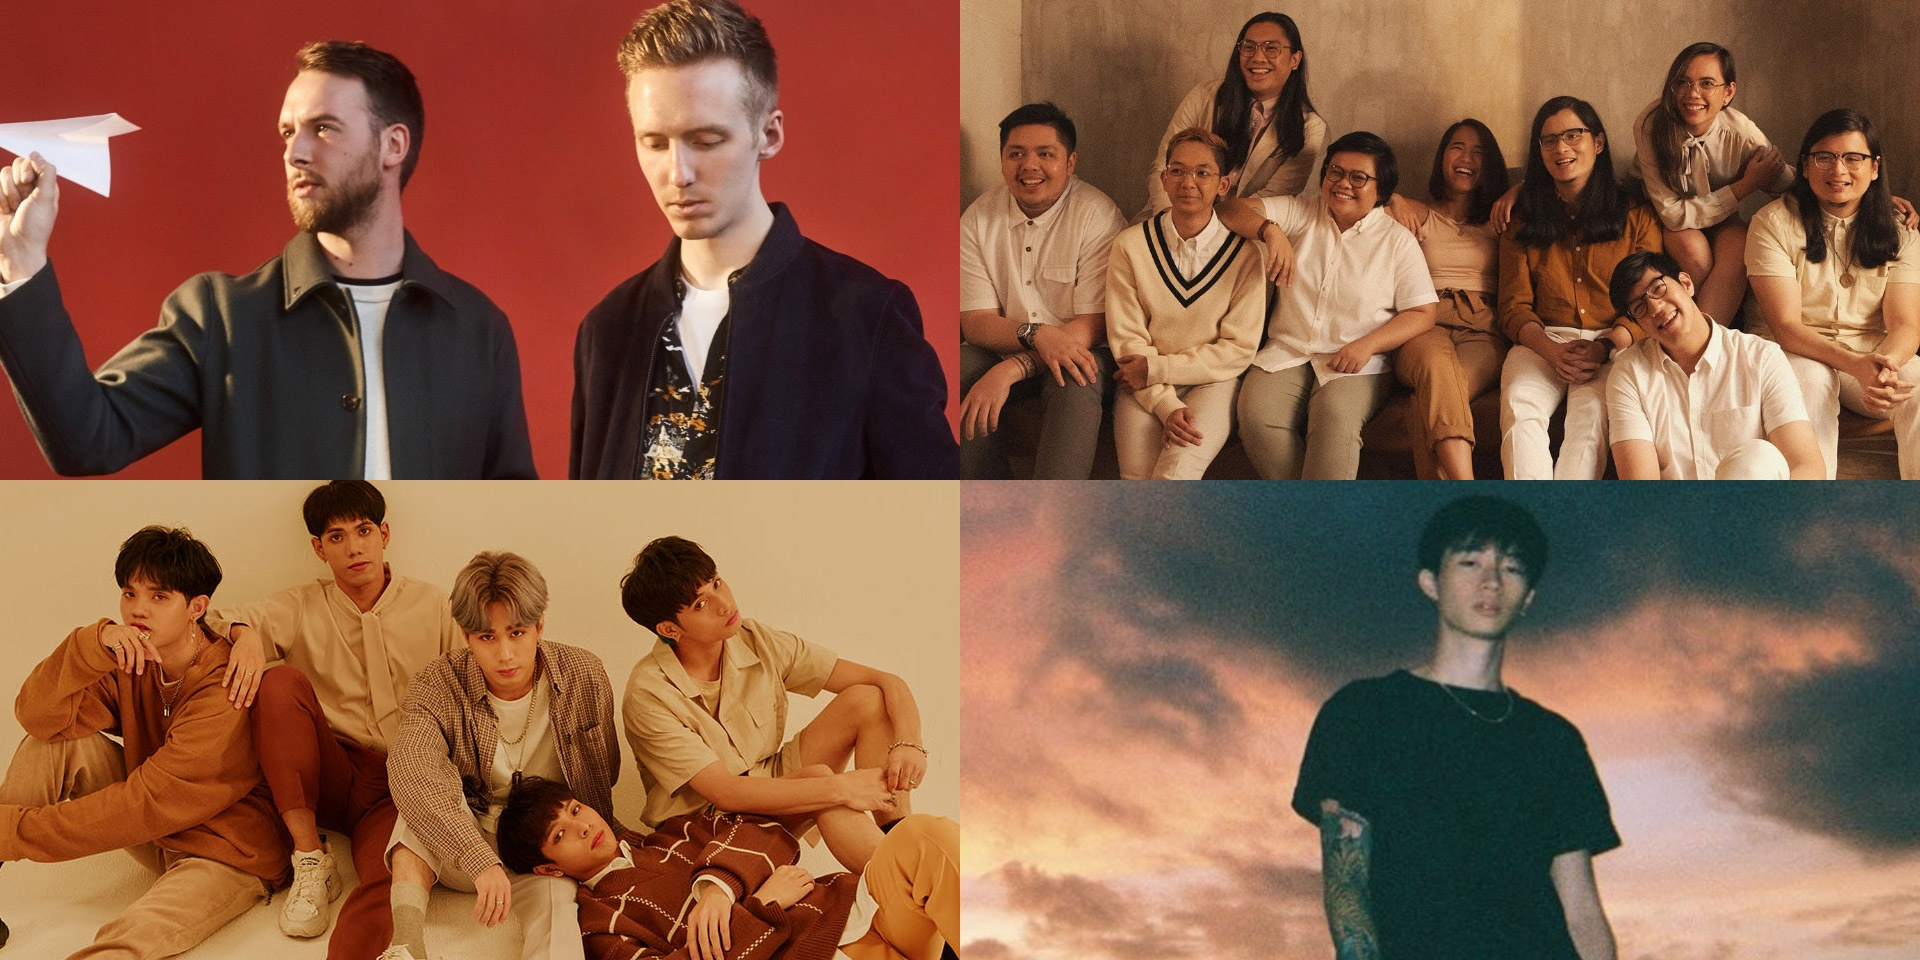 Honne, Powfu, Keshi, SB19, KZ Tandingan, Ben&Ben, and more to perform at MYX Music Awards 2020